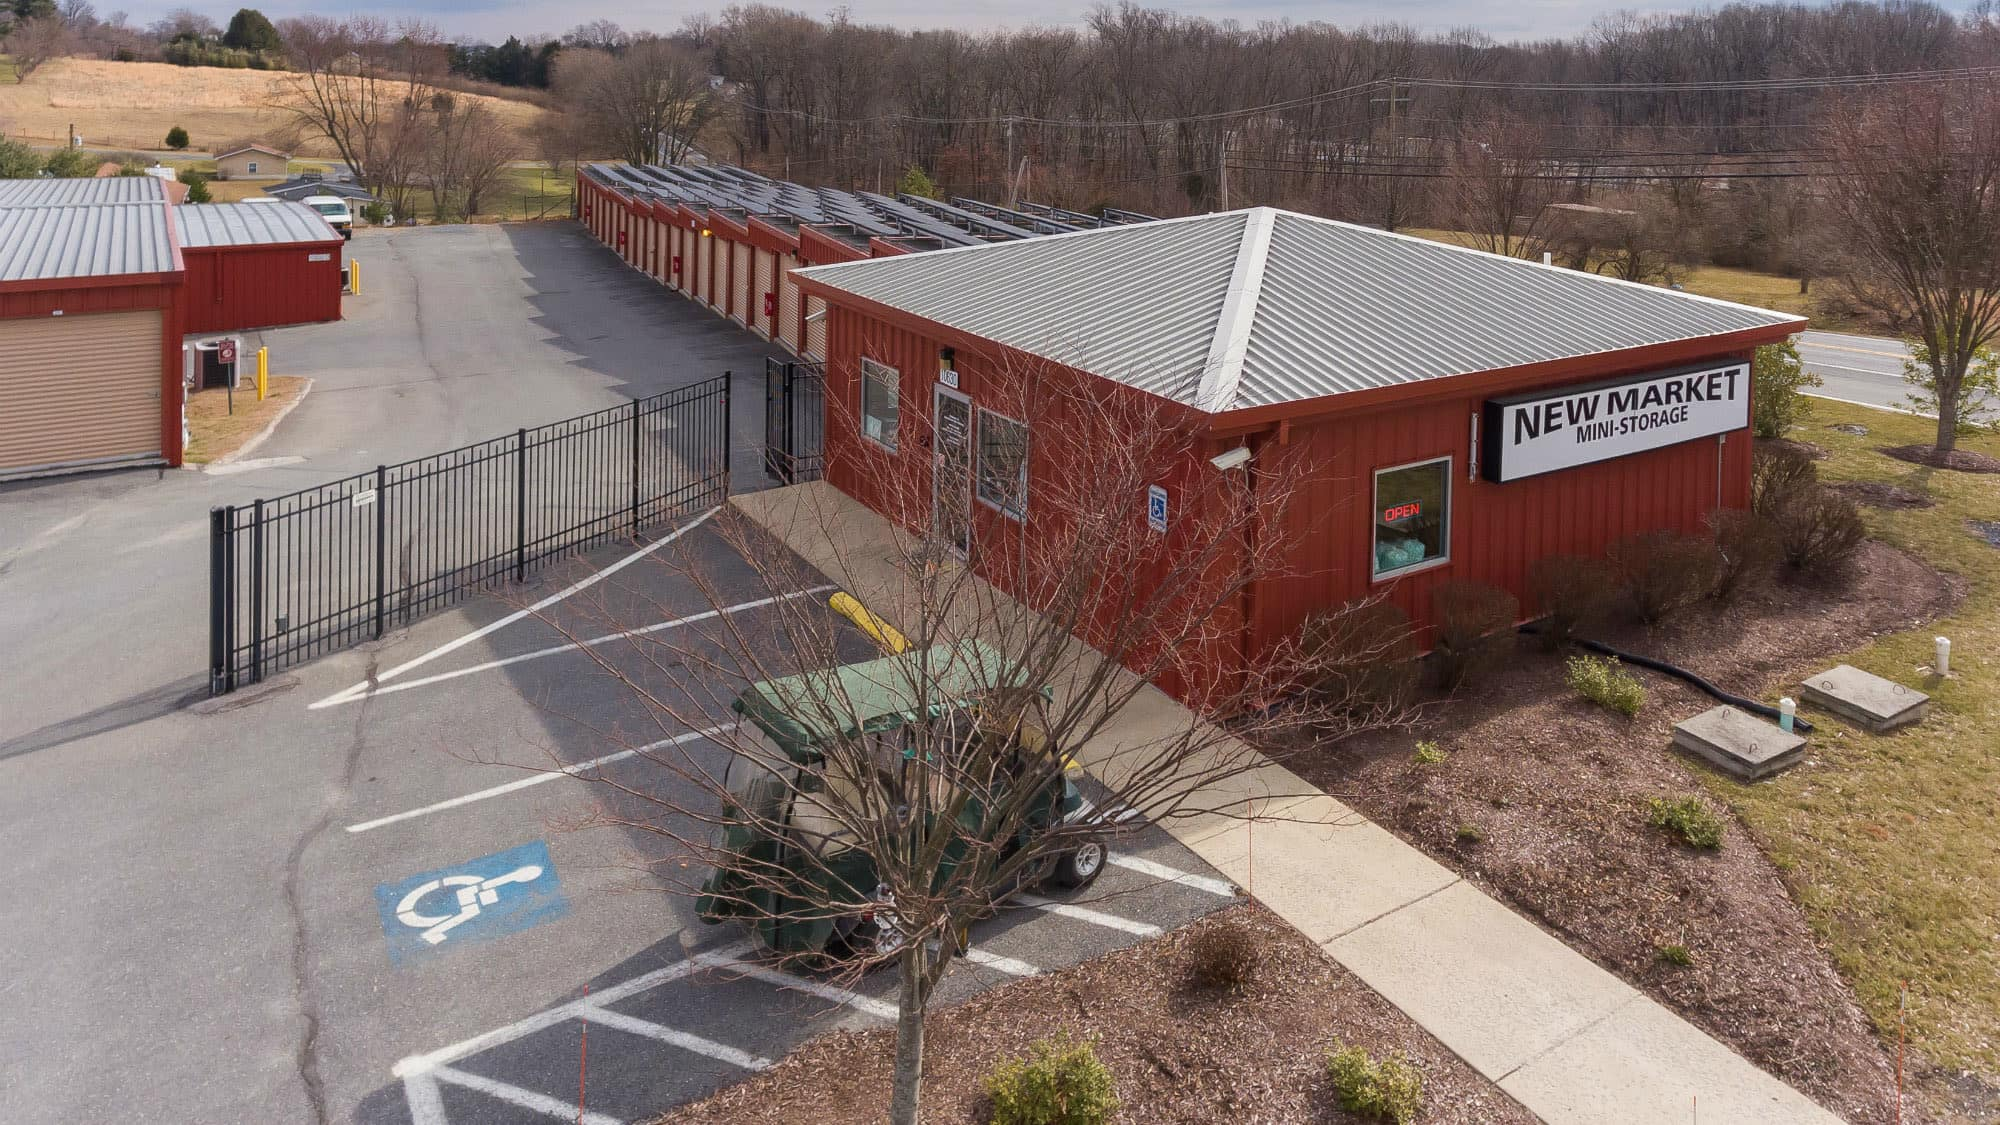 Aerial view of New Market Mini Storage in New Market, Maryland